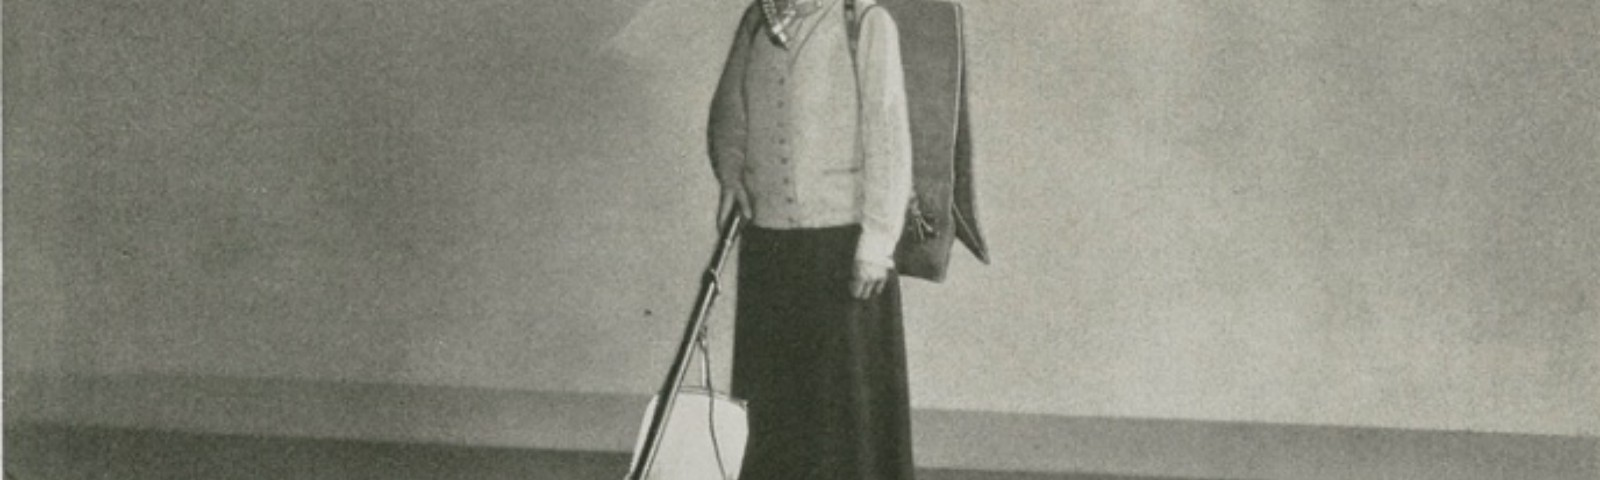 A person wearing a gas mask that connects to a bag on their back uses an upright vacuum on a carpet with a rectangular grid.